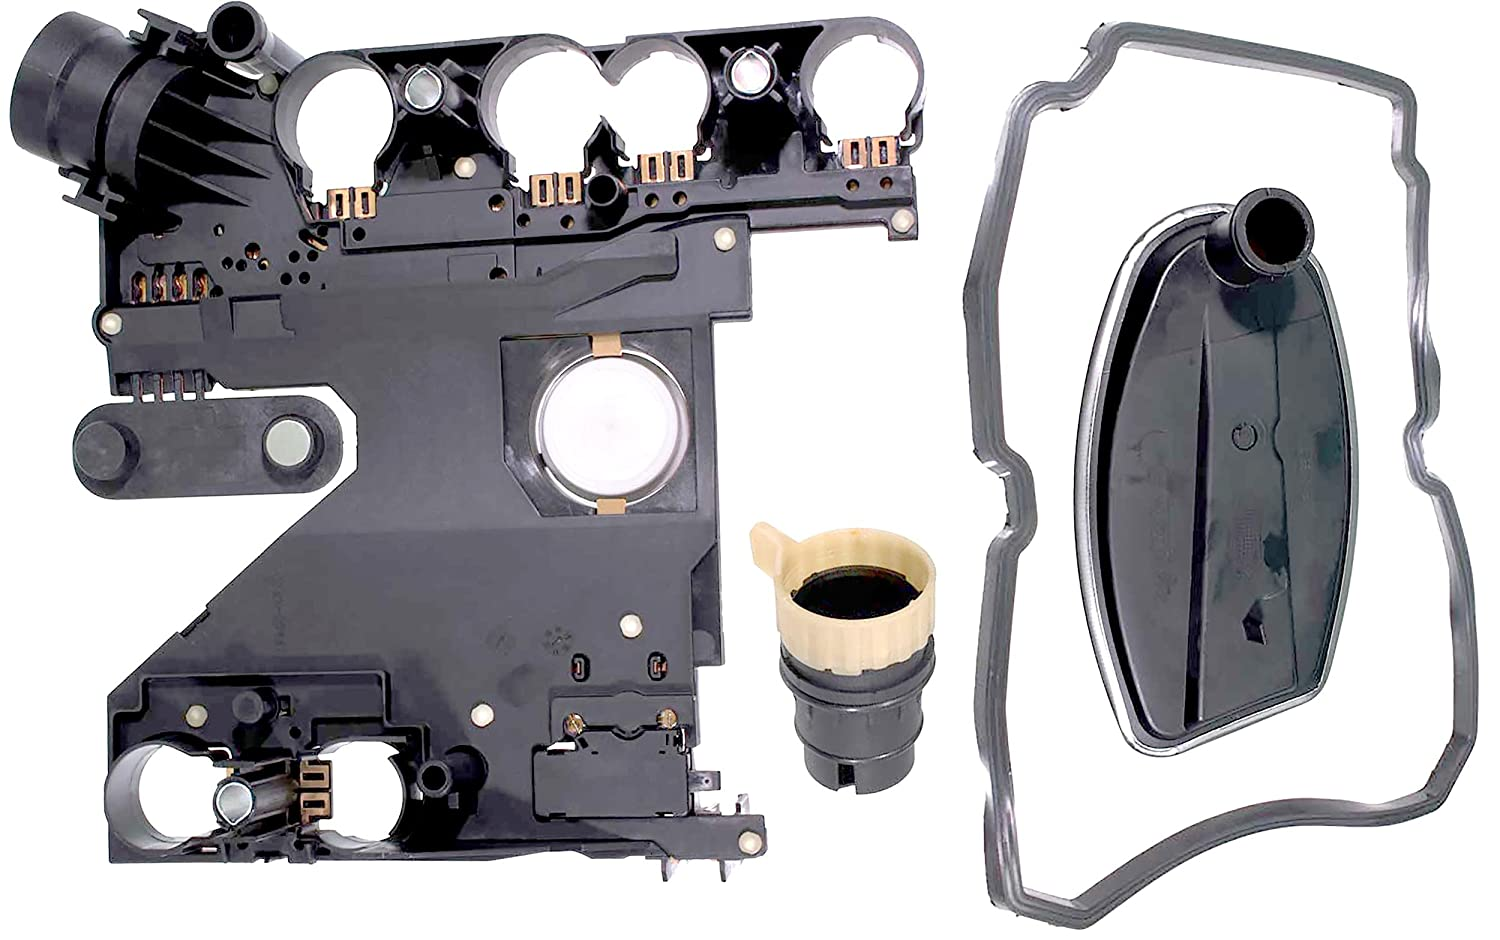 APDTY 028780 Transmission Conductor Plate Complete Kit Includes Valve Body  Plate, VSS Vehicle Speed Sensor, Adapter Plug, Filter, Gasket (Replaces